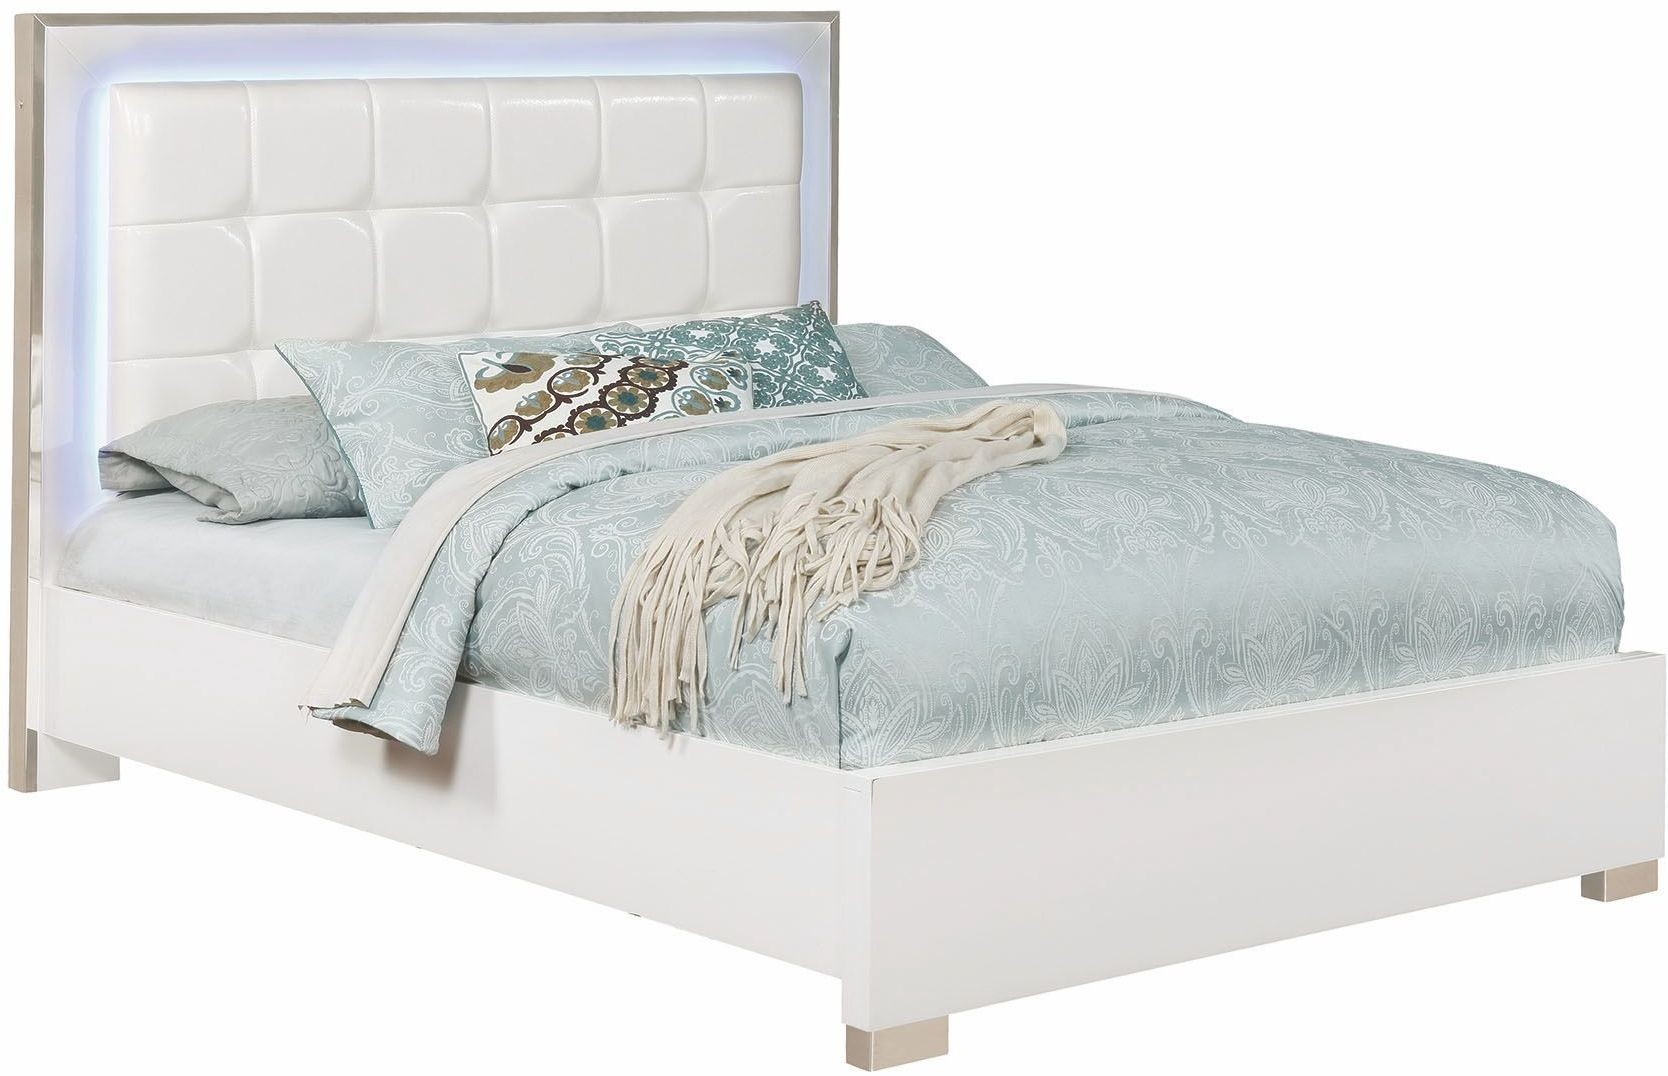 Traynor White King Upholstered Platform Bed From Coaster